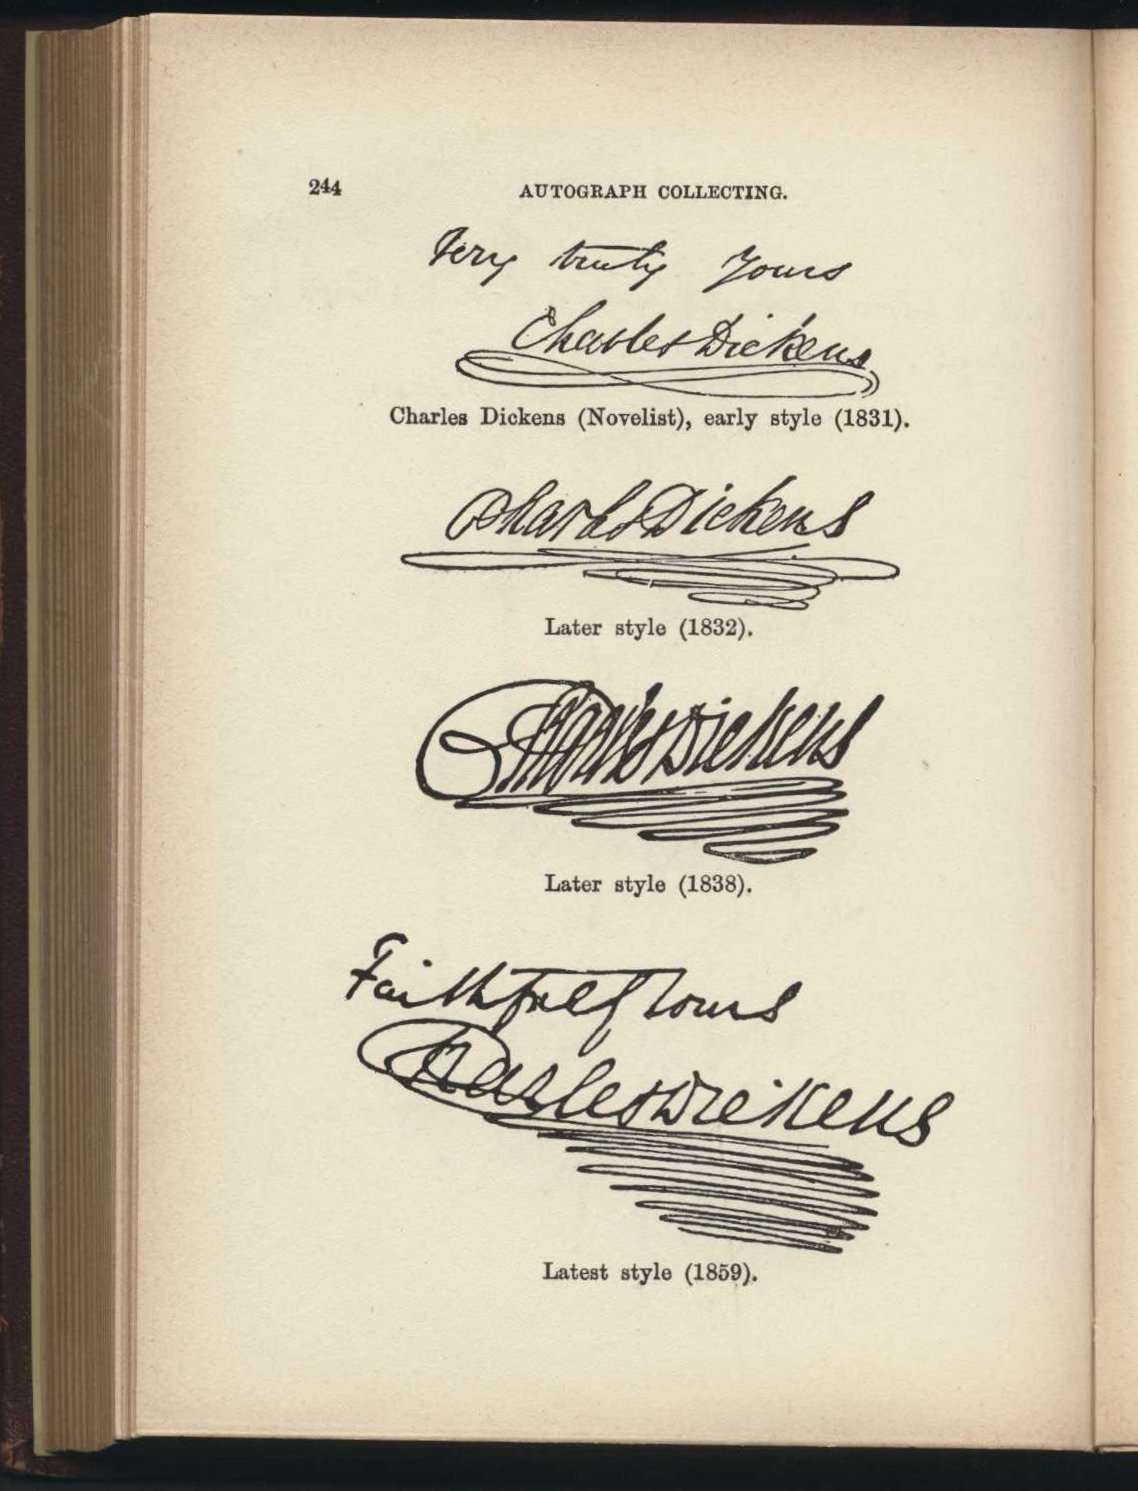 Henry T. Scott. Autograph collecting: a practical manual for amateurs and historical students. London: L. Upcott Gill, 1894.